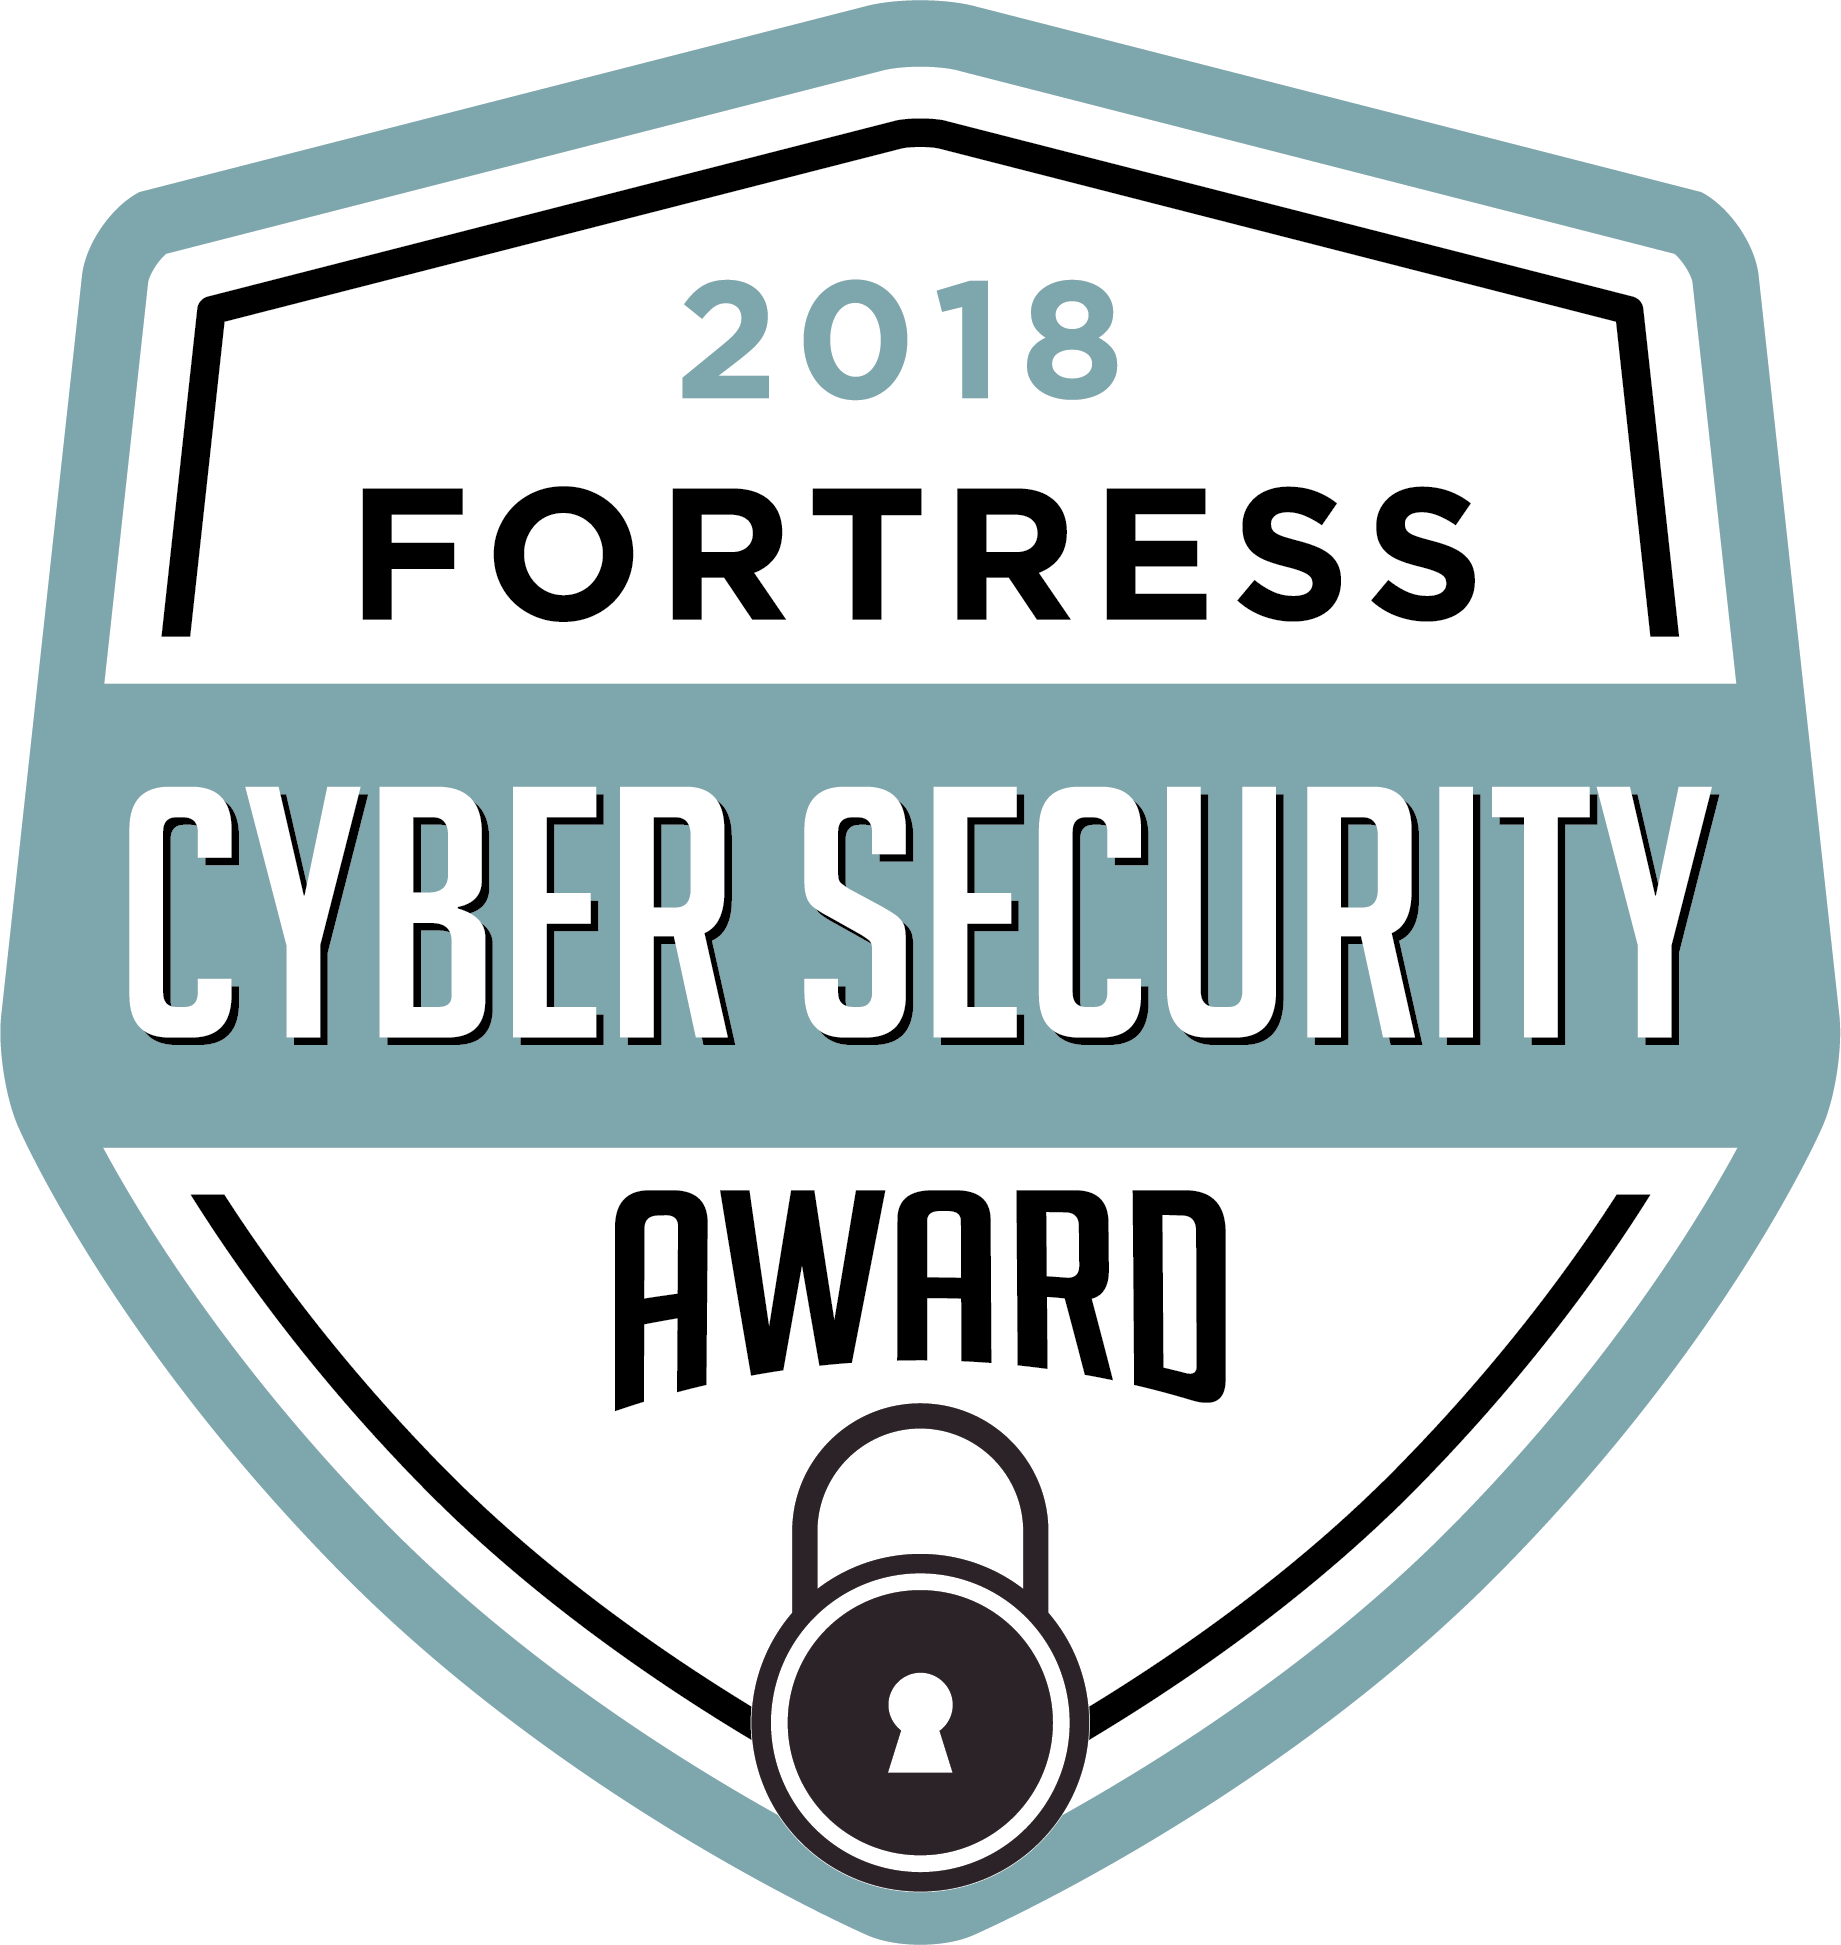 Fortress Cyber Security Award